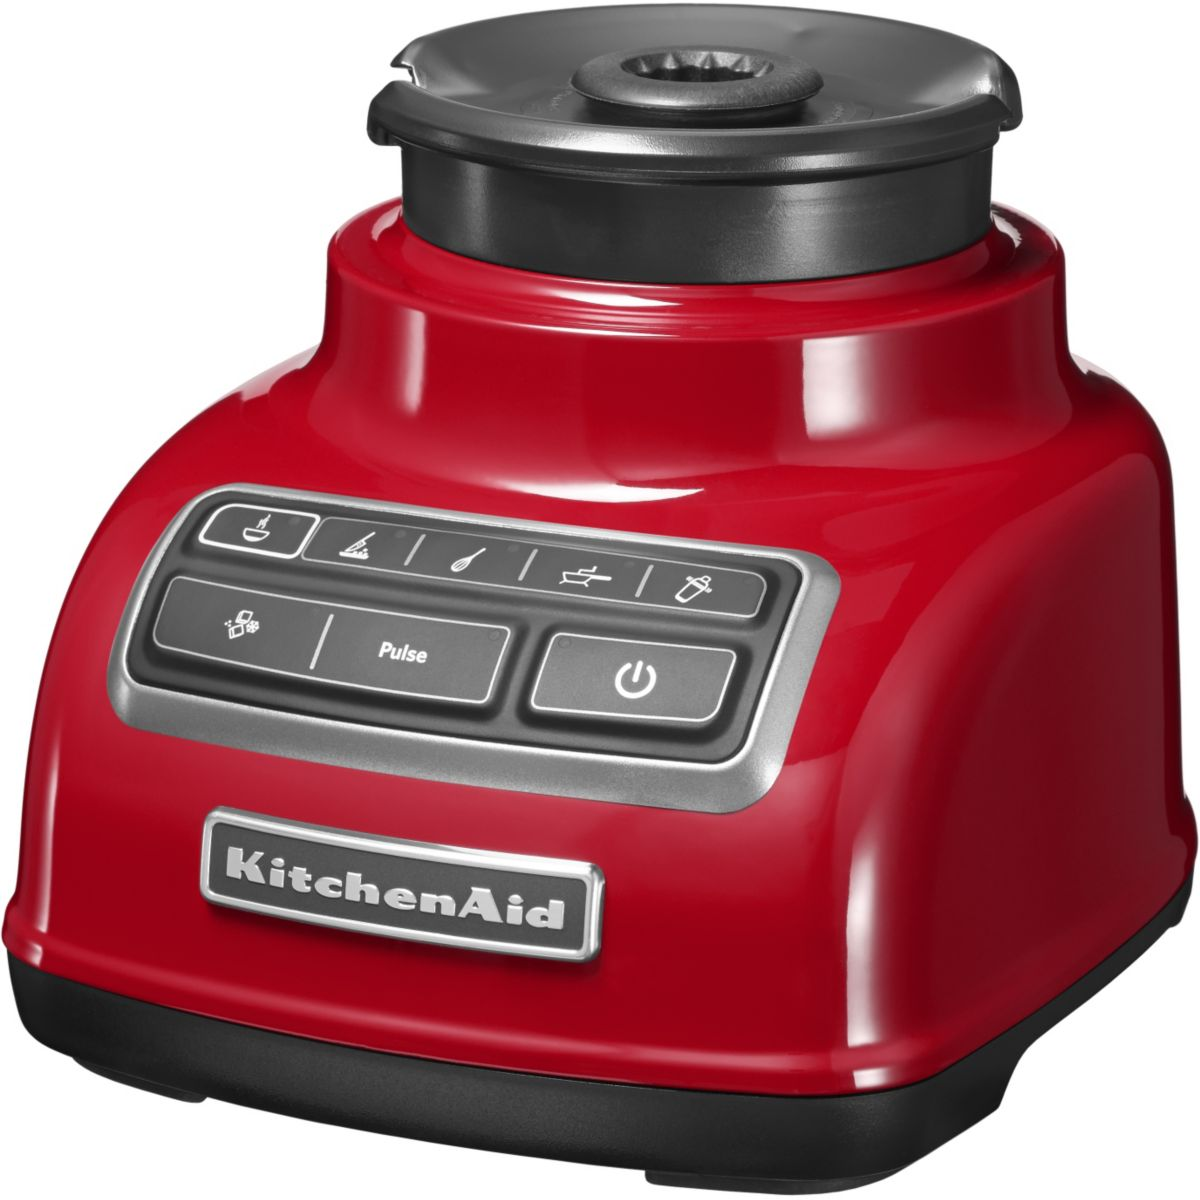 Blender kitchenaid diamond 5ksb1585eer rouge empire - livraiso...